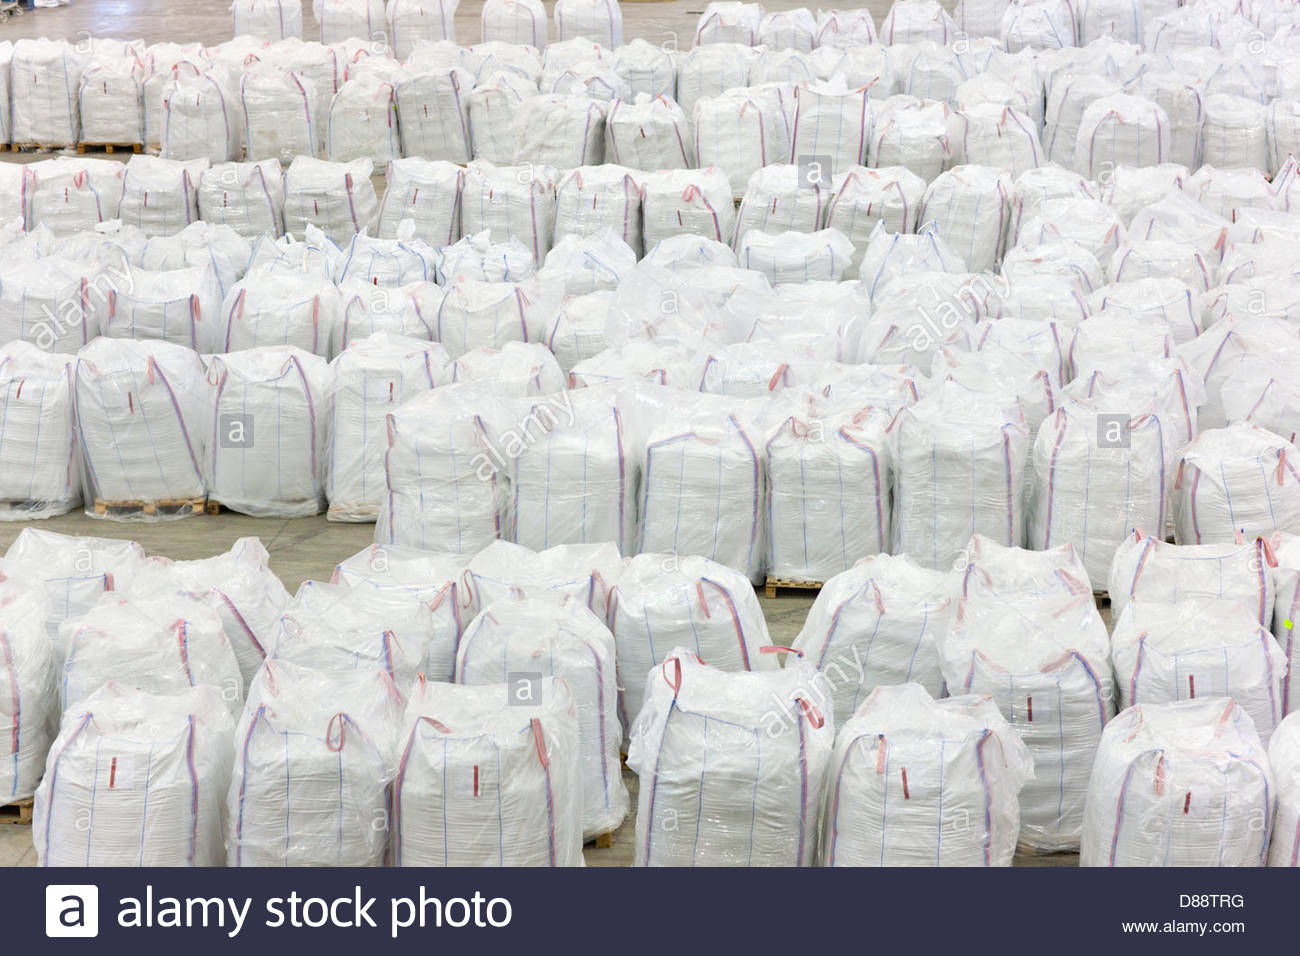 Large bags of recycled plastic pellets in warehouse - Stock Image